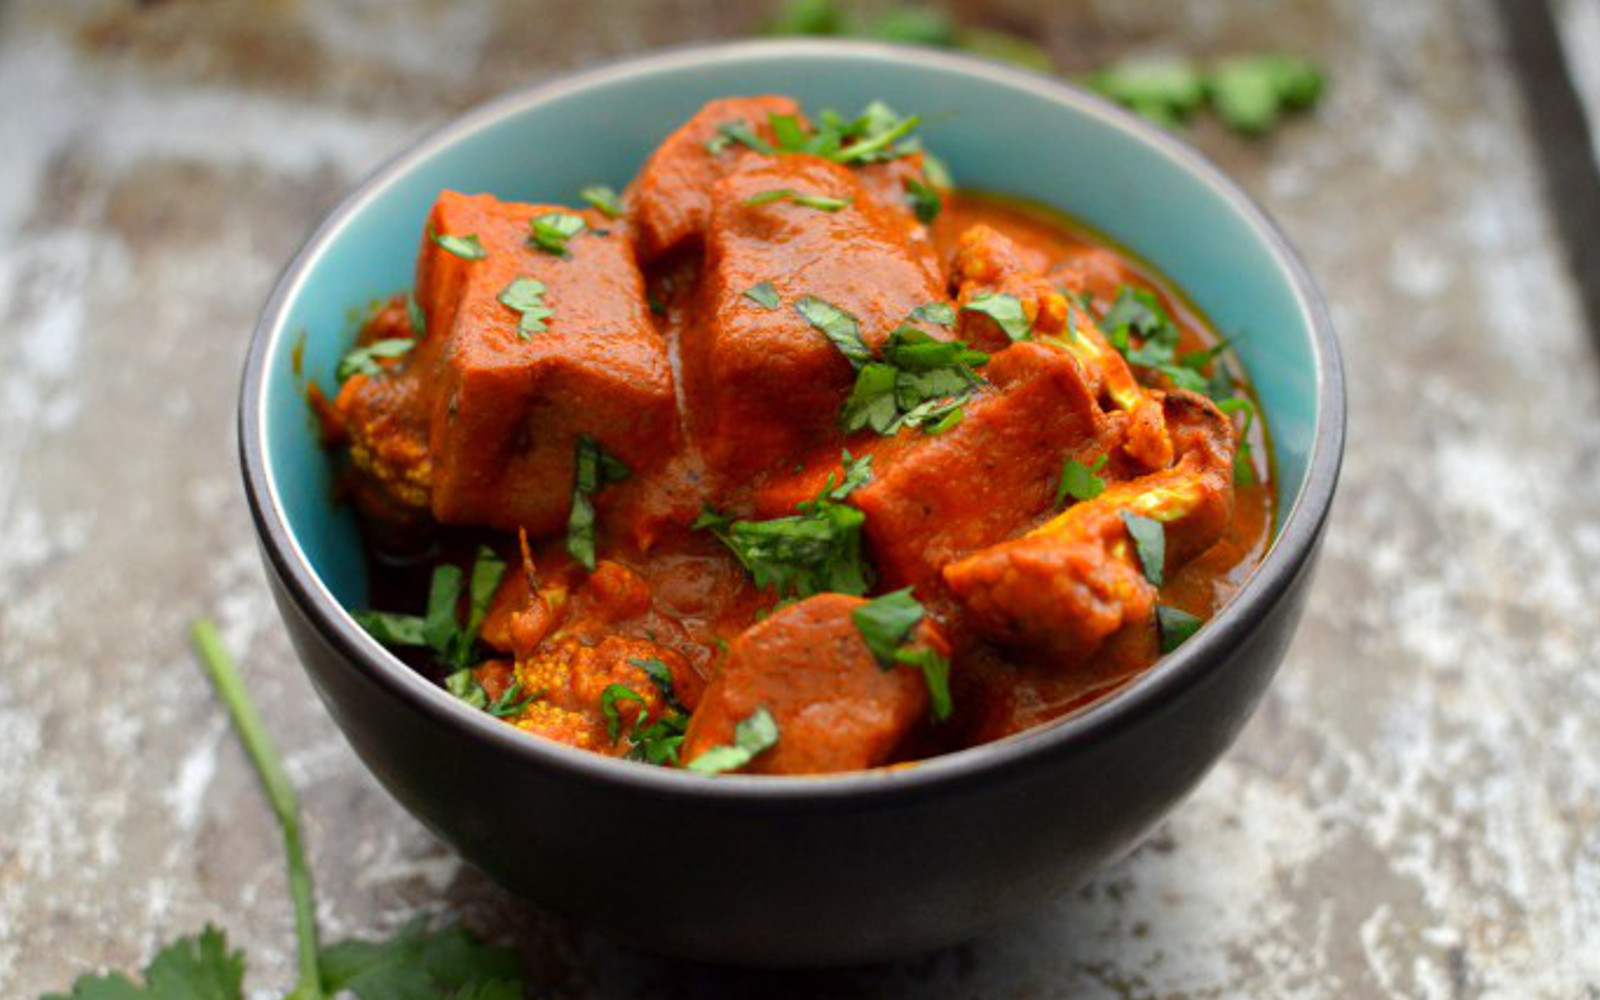 Vegan 'Butter' Masala With Roasted Sweet Potato and Cauliflower with herbs